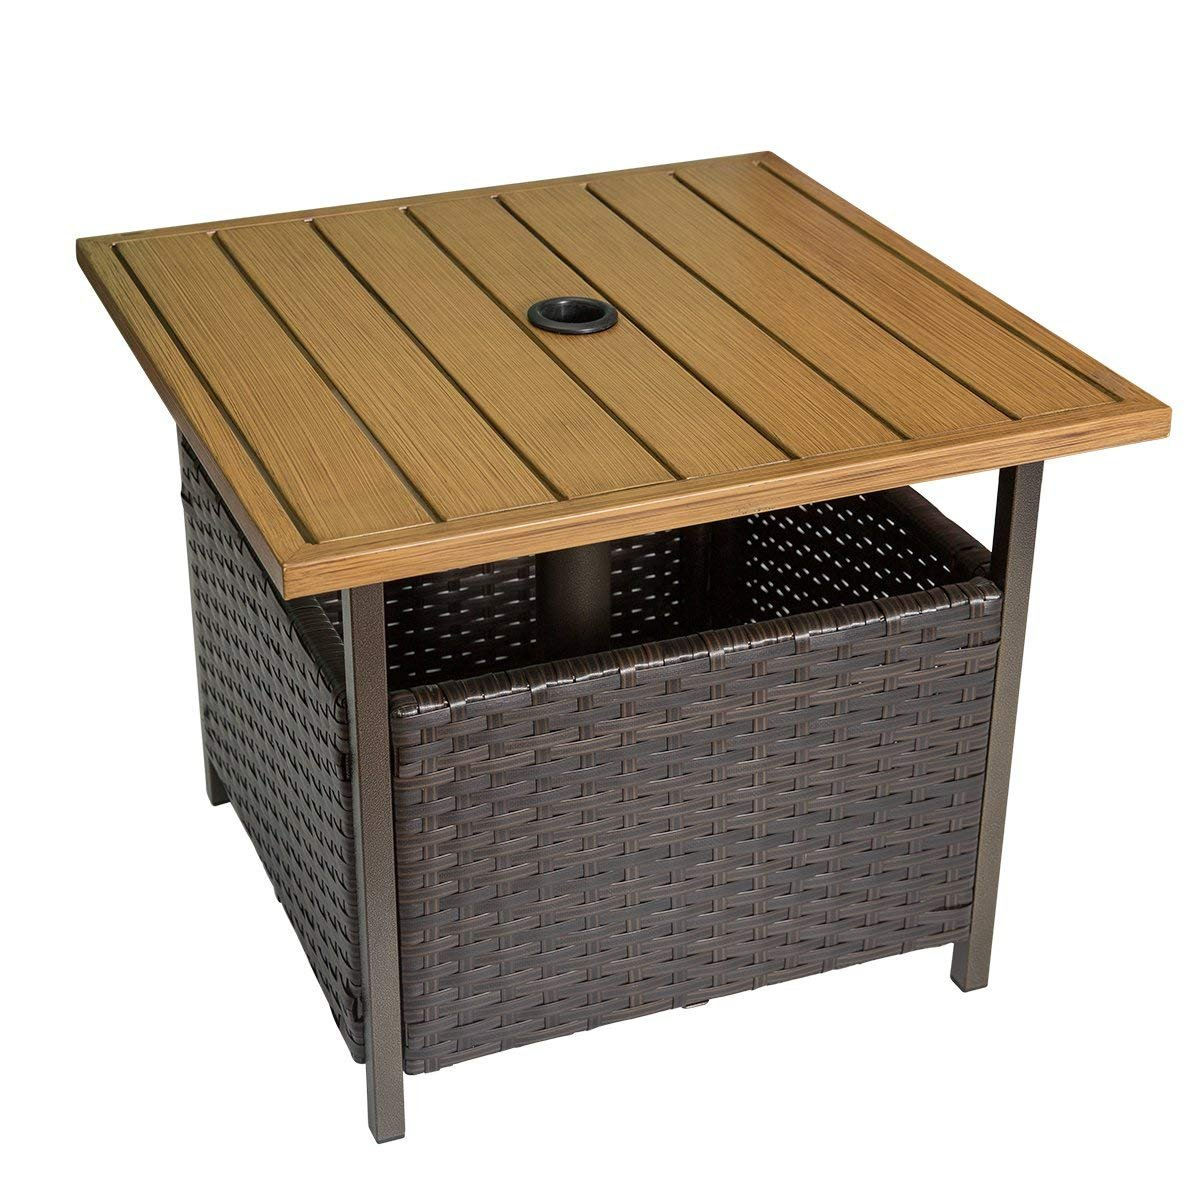 Marble Field Patio Wicker Bistro Dining Table, Square Umbrella Table with Storage Space, Garden Leisure Coffee Side Table